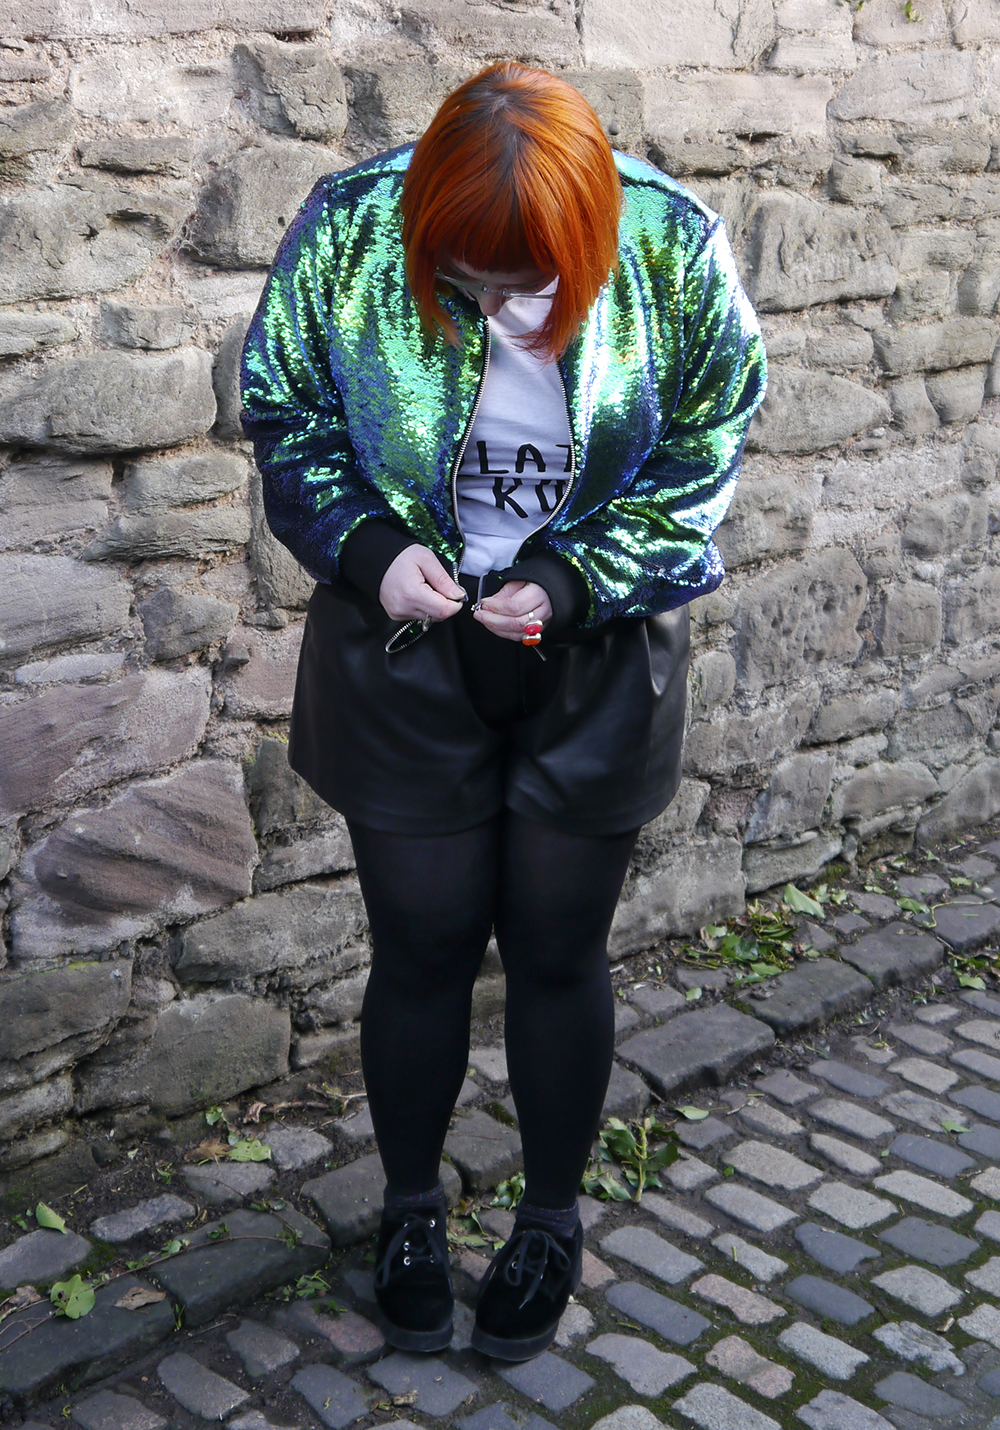 Isolated Heroes, Styled by Helen, Dundee designer, Scottish designer, Scottish blogger, Independent designer, street style, sequined outfit, bomber jacket, sequin bomber jacket, mermaid sequins